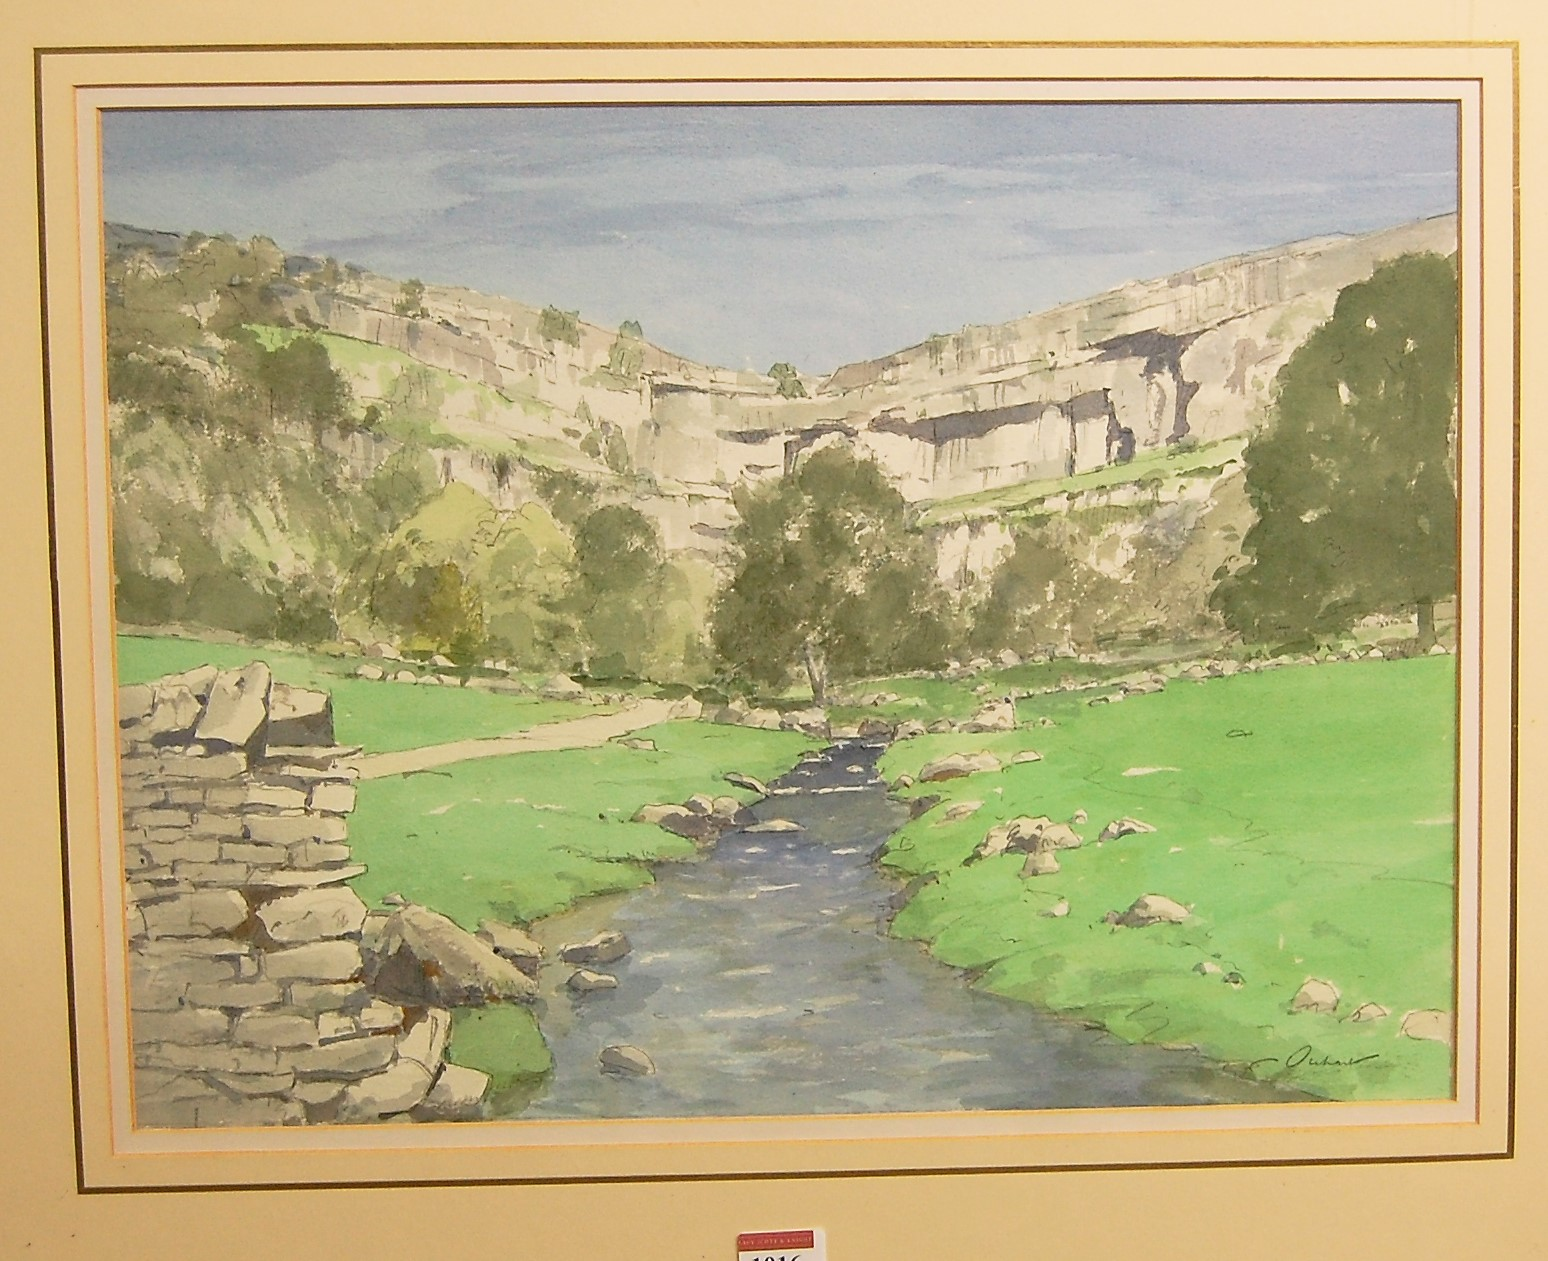 Lot 1016 - Stanley Orchart - Malham Cove, Airedale, Yorkshire, watercolour, signed lower right, 35 x 47cm